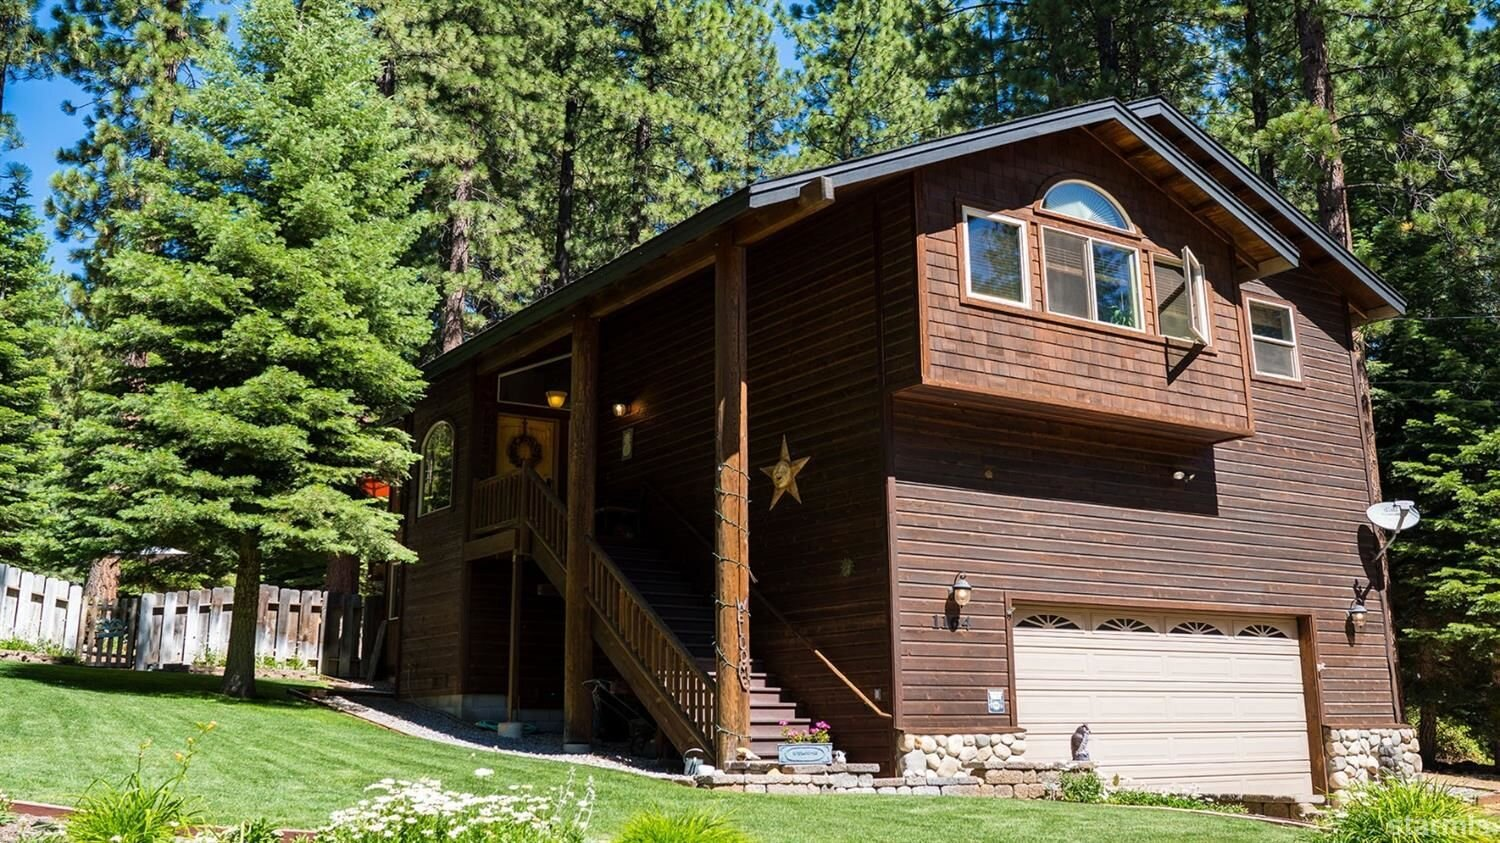 1164 Kulow Street, South Lake Tahoe, CA  4 Bed | 2 Bath | 2,130 sqft | $689,000 Sheila Edner | 530.545.0392